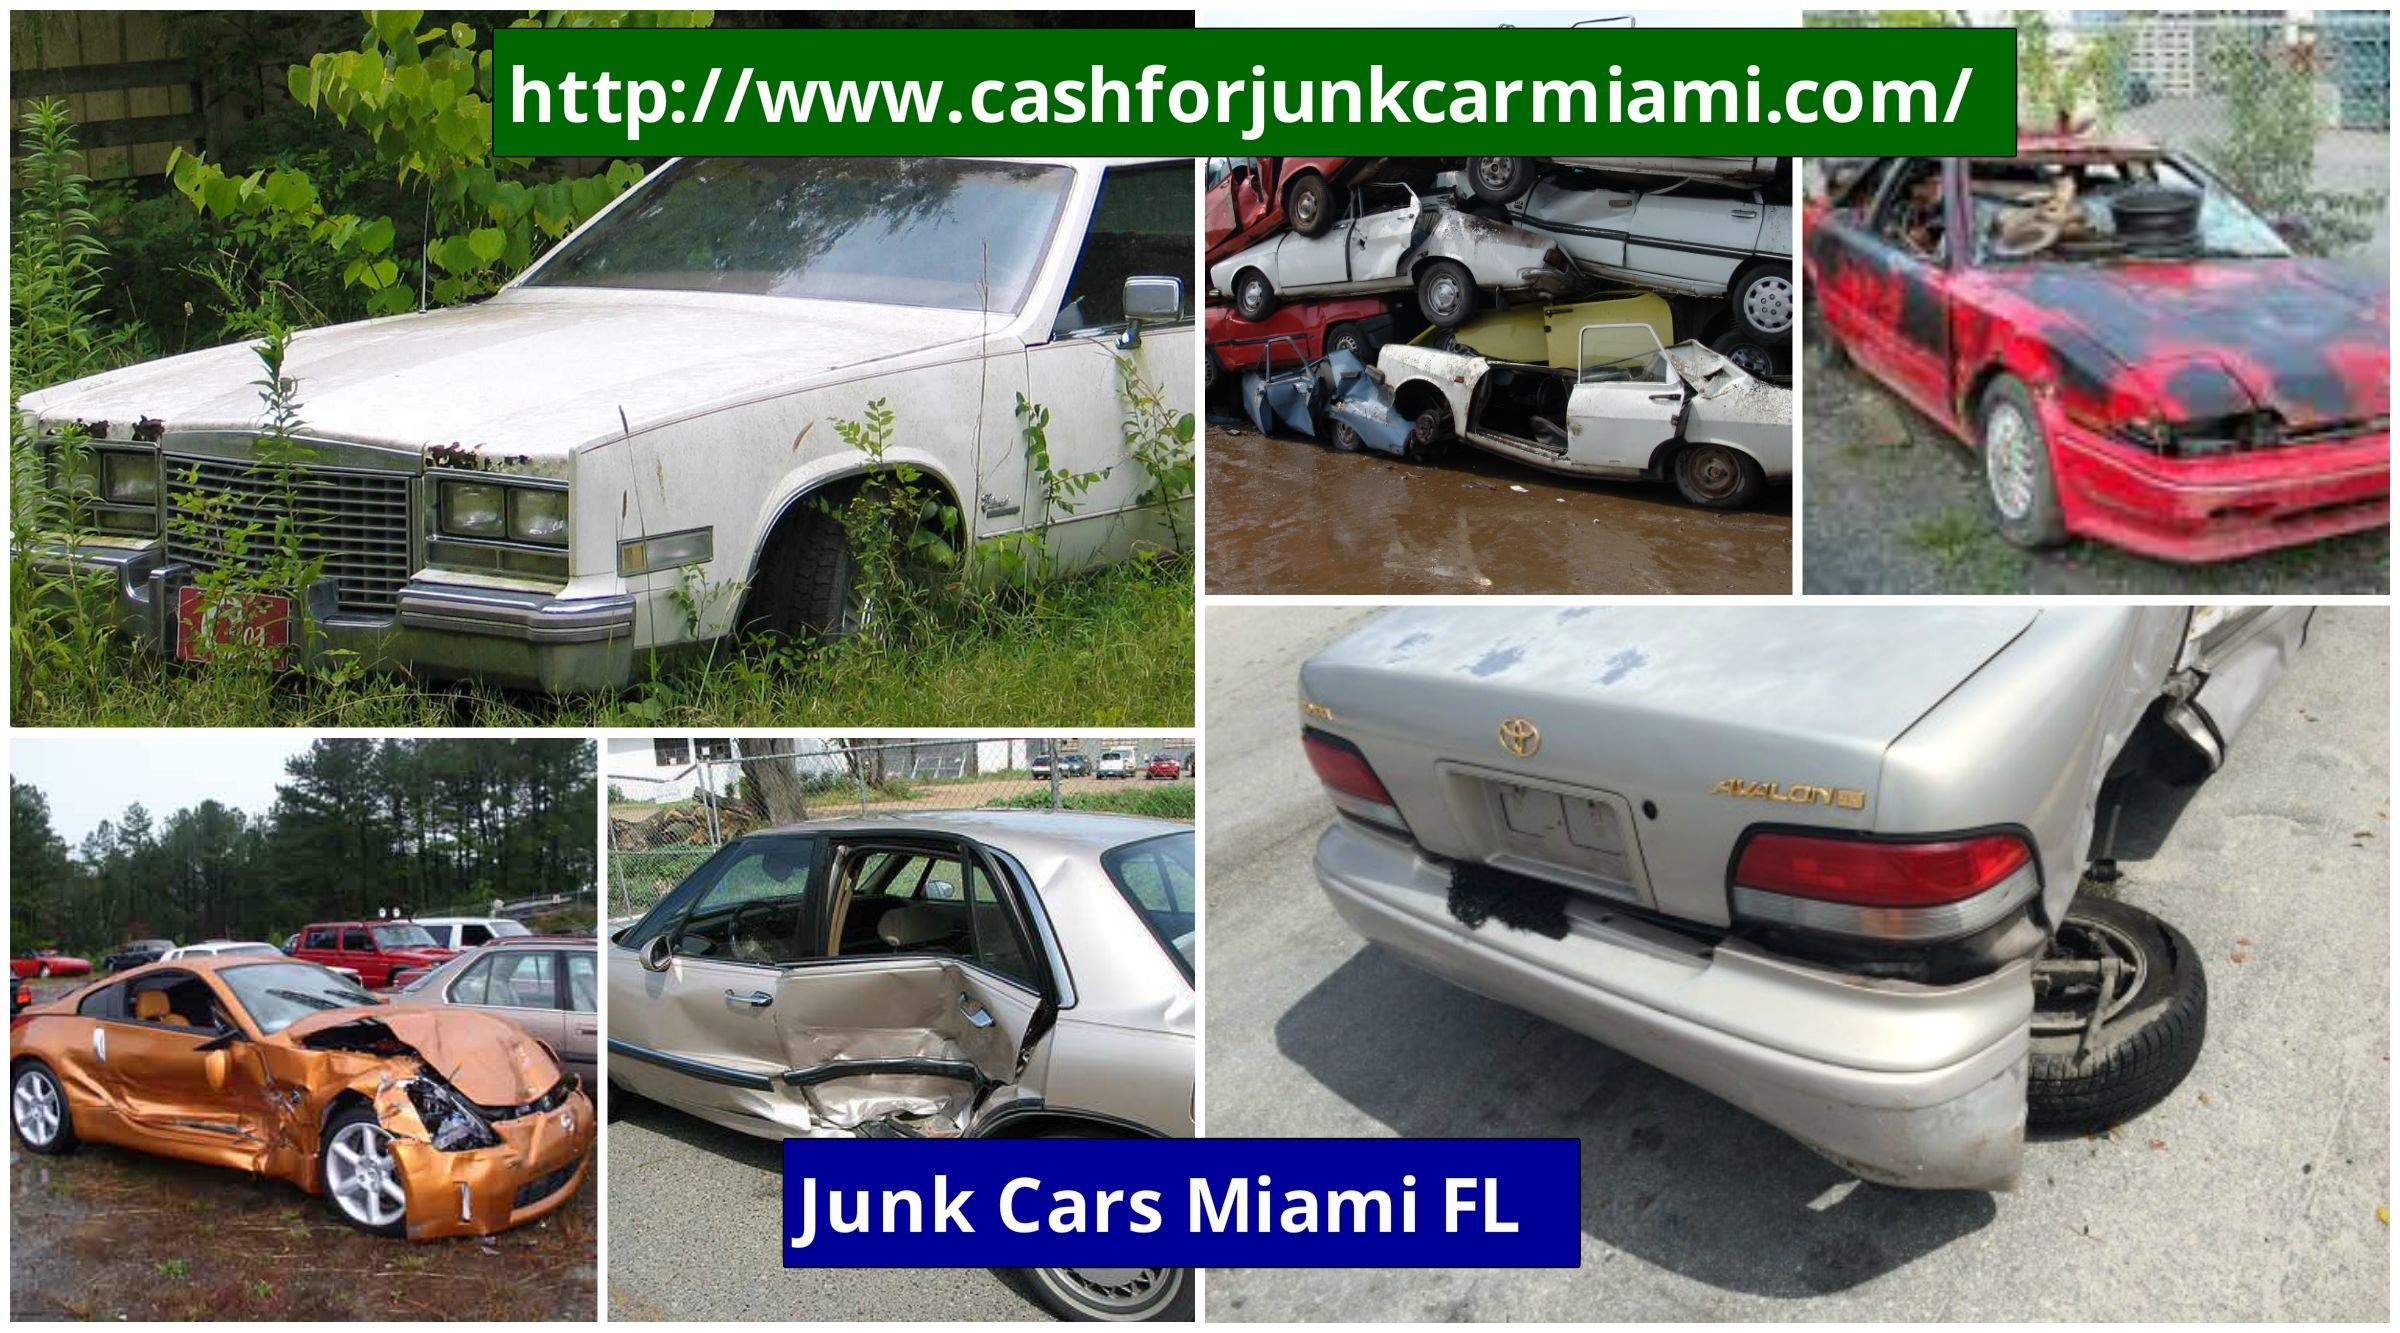 http://www.cashforjunkcarmiami.com/ Junk cars Miami FL helps people ...